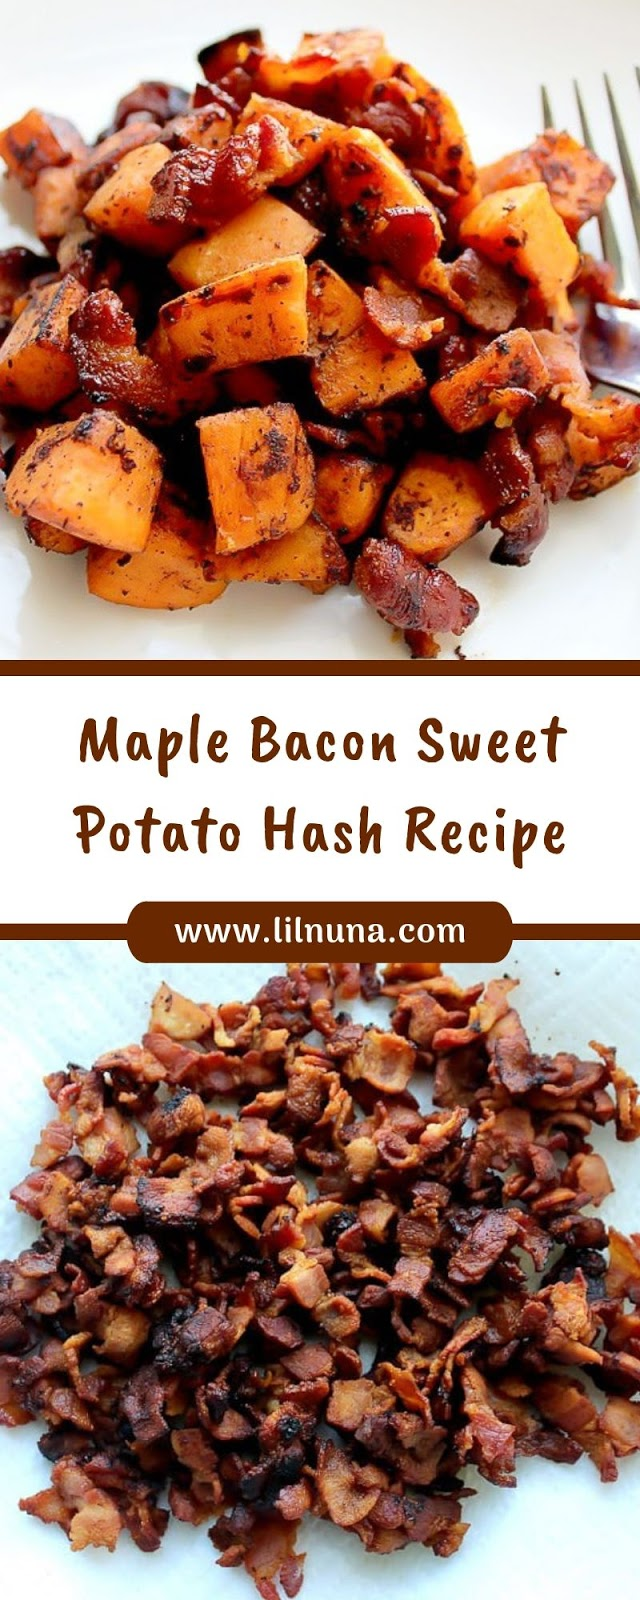 Maple Bacon Sweet Potato Hash Recipe